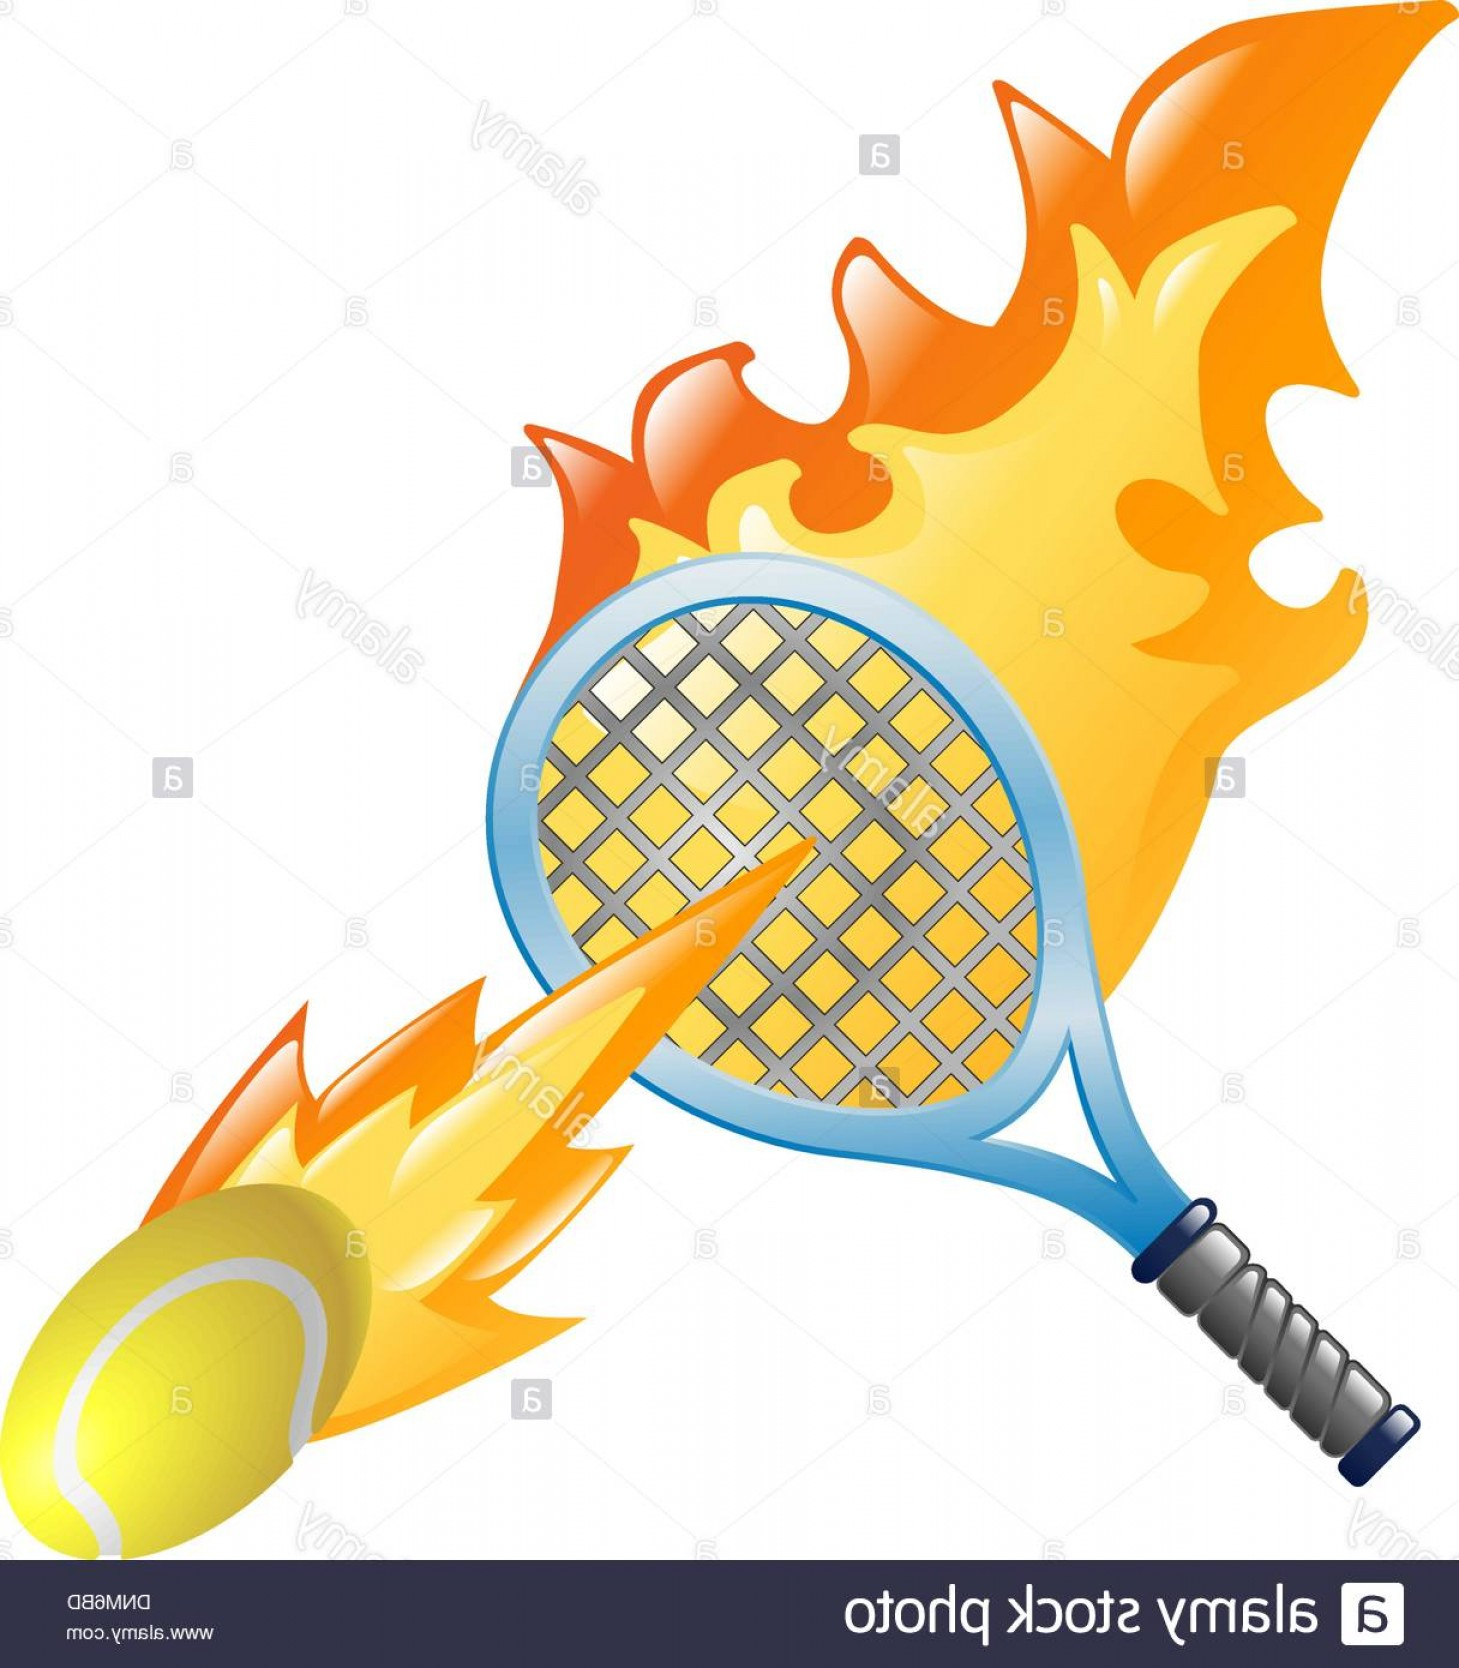 Flaming Tennis Ball Vector Art: Stock Photo Illustration Of A Flaming Tennis Racket And Tennis Ball